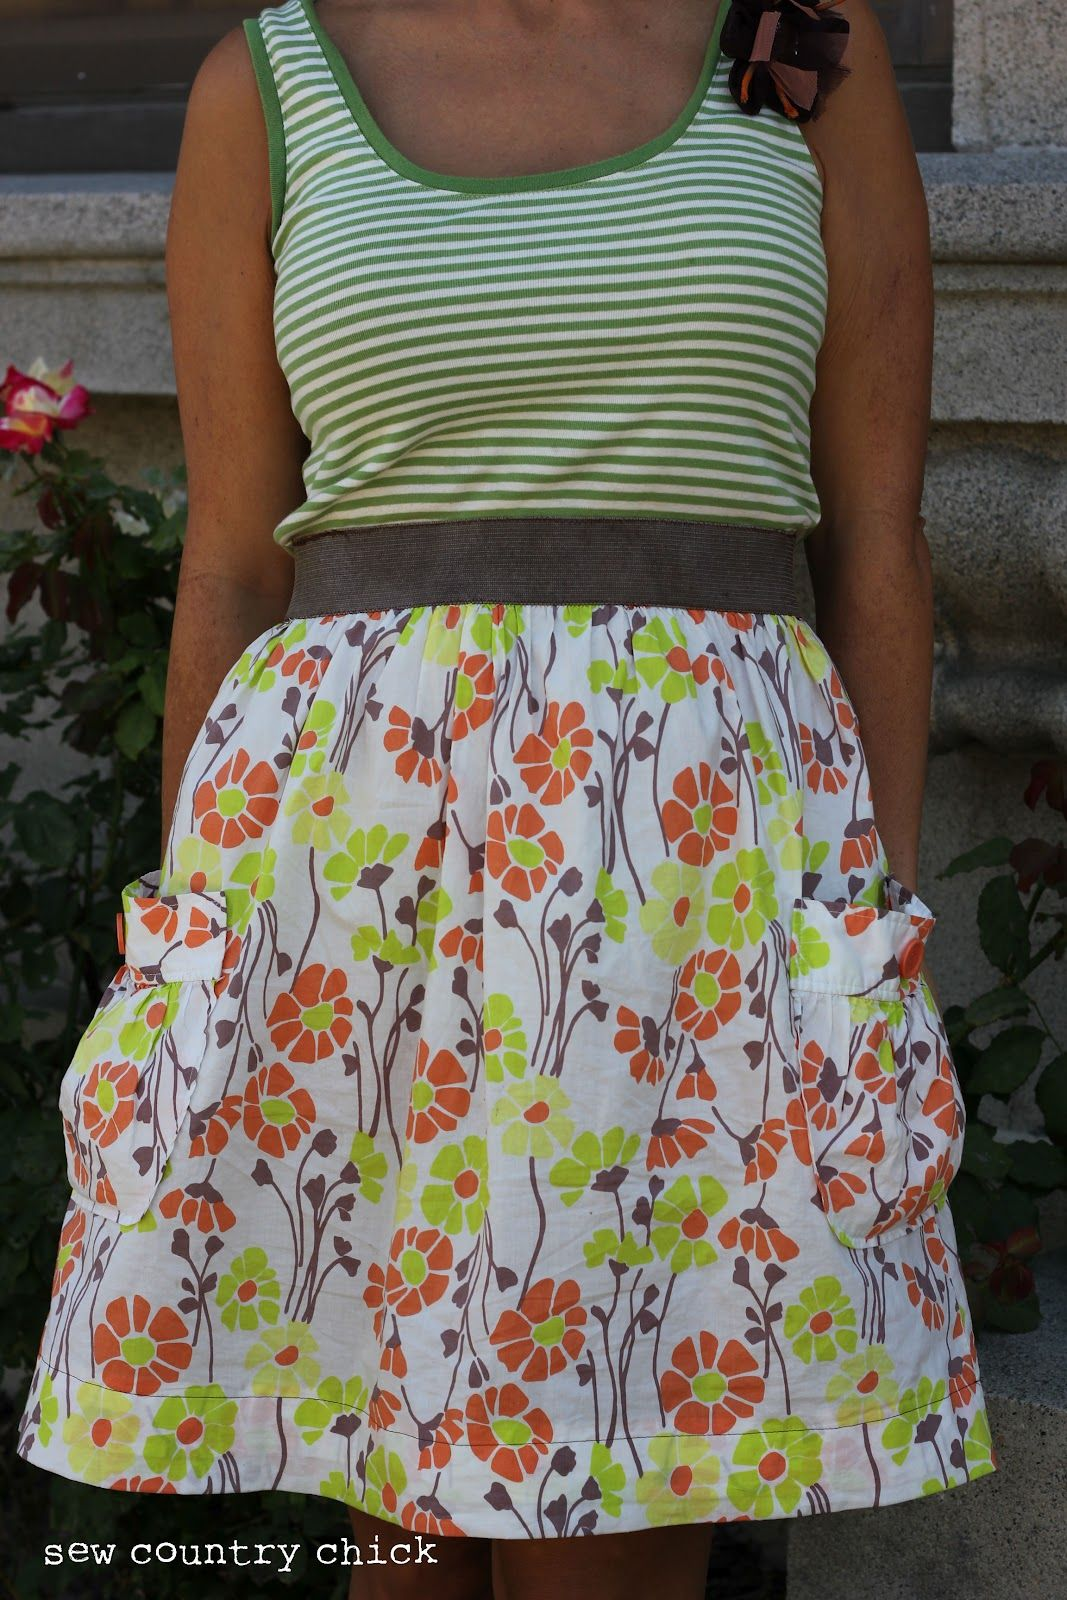 Easy tank top dress tutorial it isnt a belt it is part of the sew country chick sewing crafts and vintage style easy tank top dress tutorialsleeves and a longer skirt jeuxipadfo Gallery